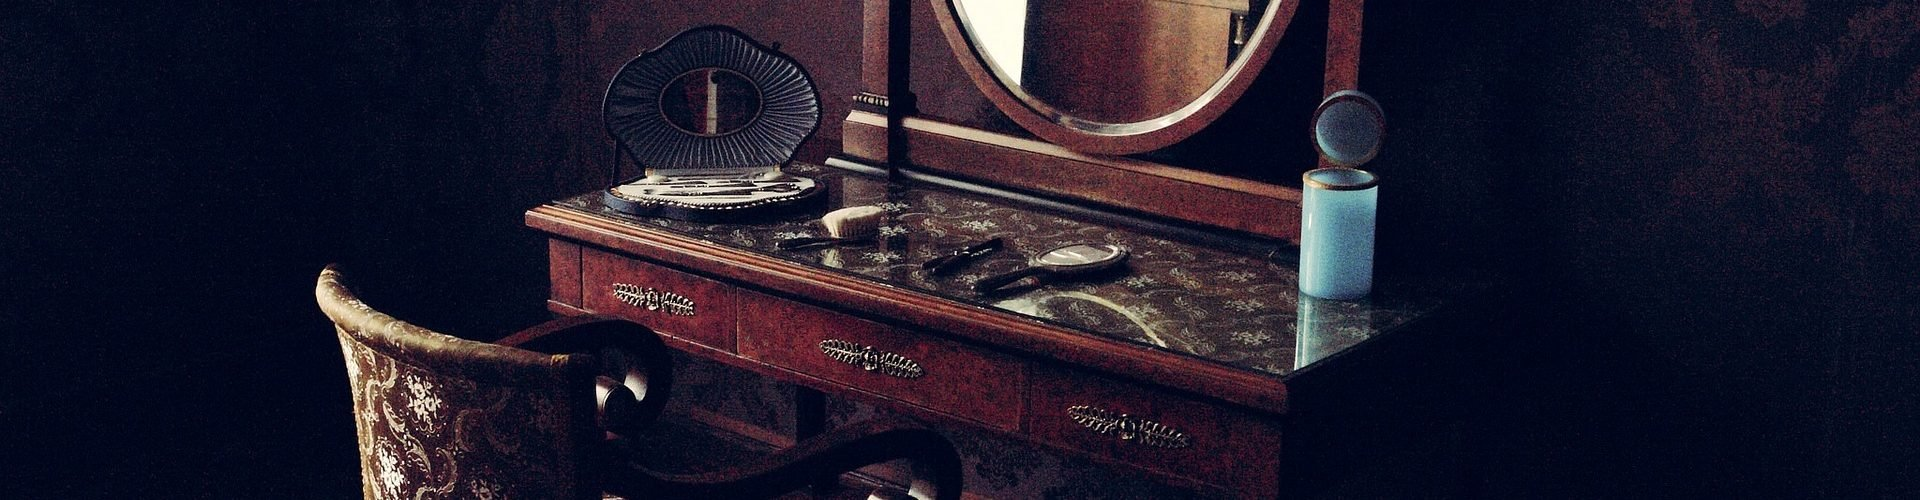 How to find antique furniture values